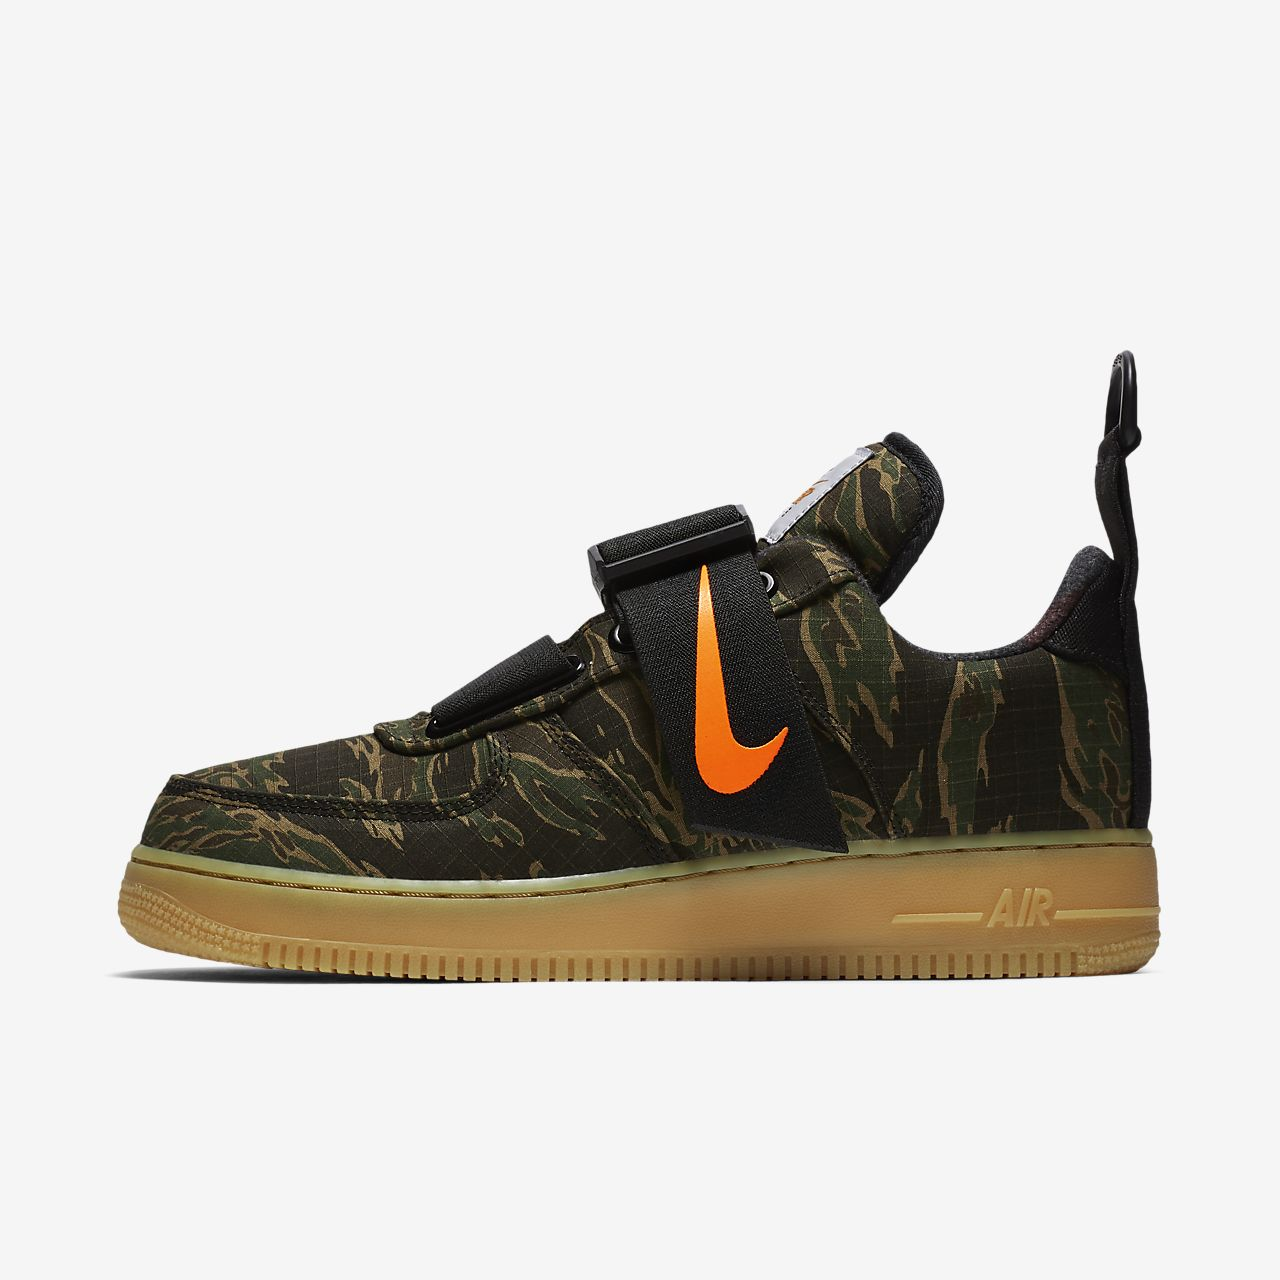 021ace7952e3 Nike Air Force 1 Utility Low Premium WIP Men s Shoe. Nike.com